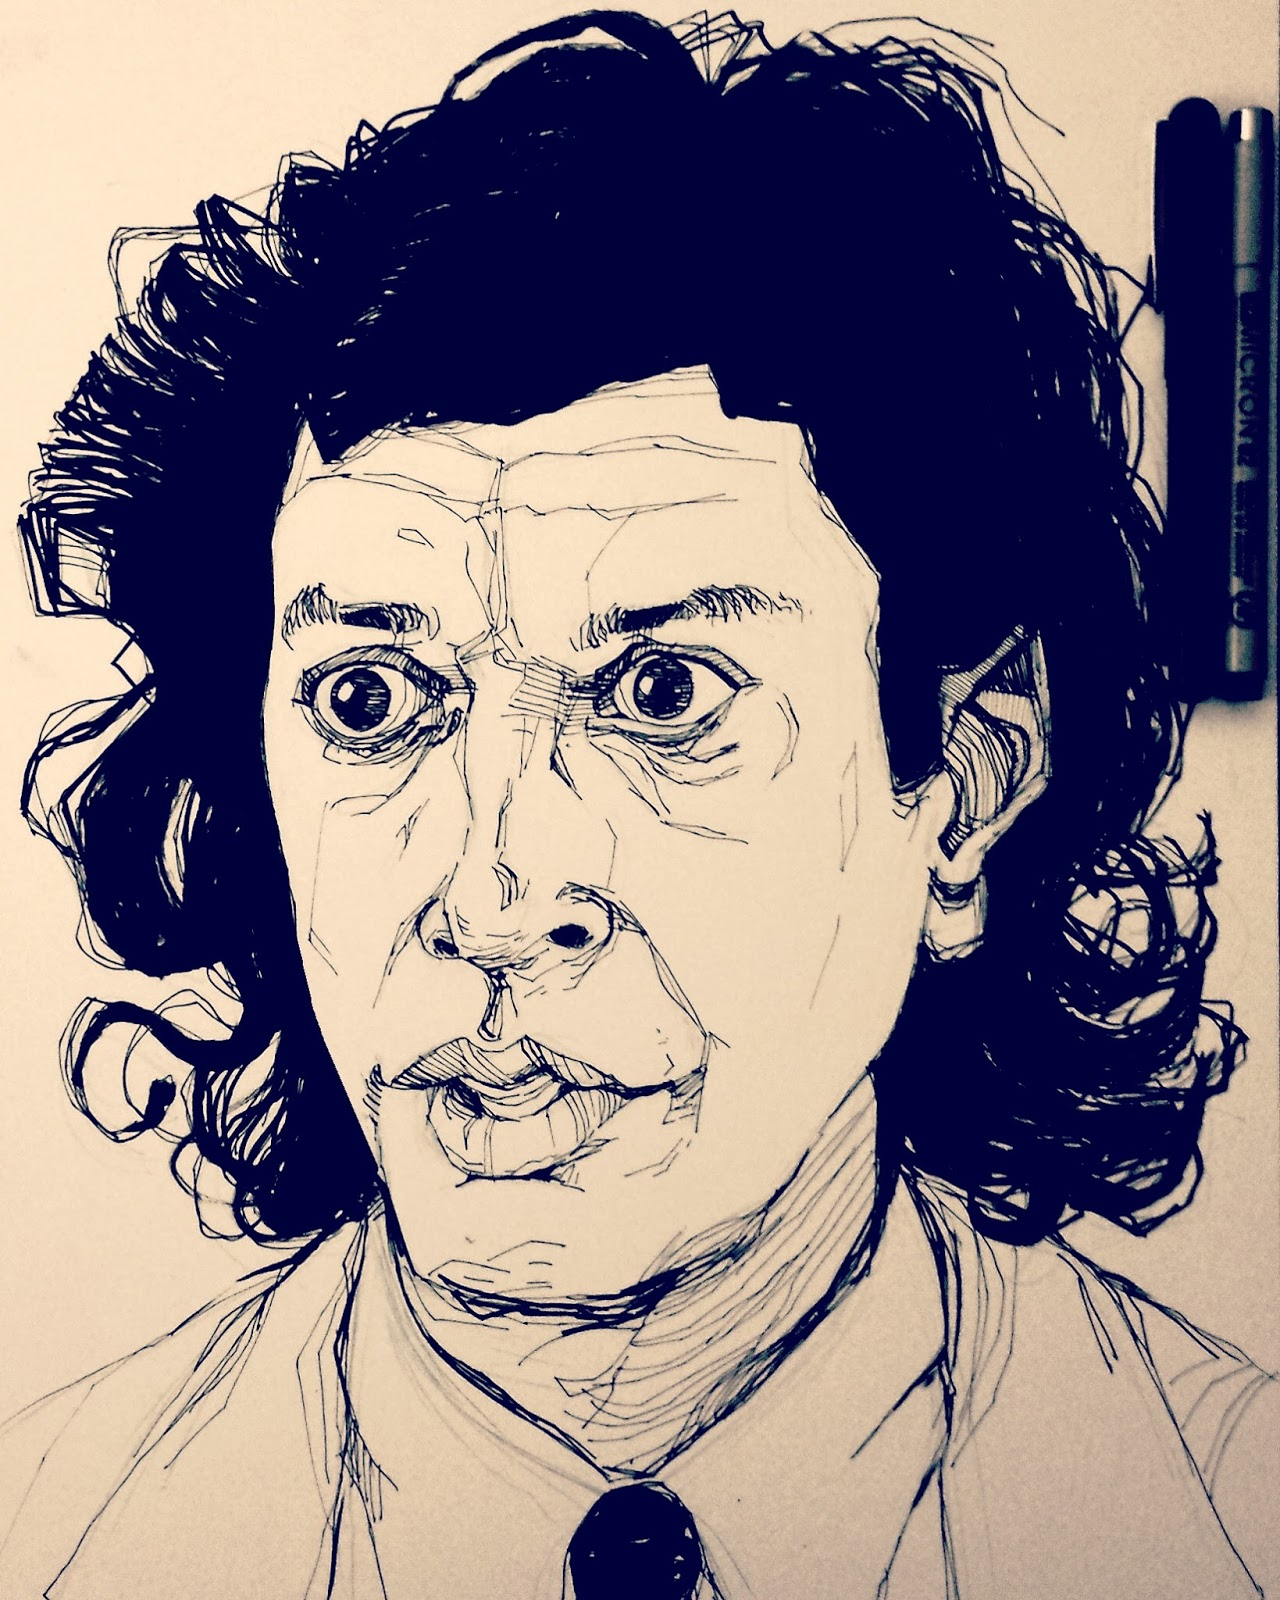 Seth Brundle Jeff Goldblum Illustration